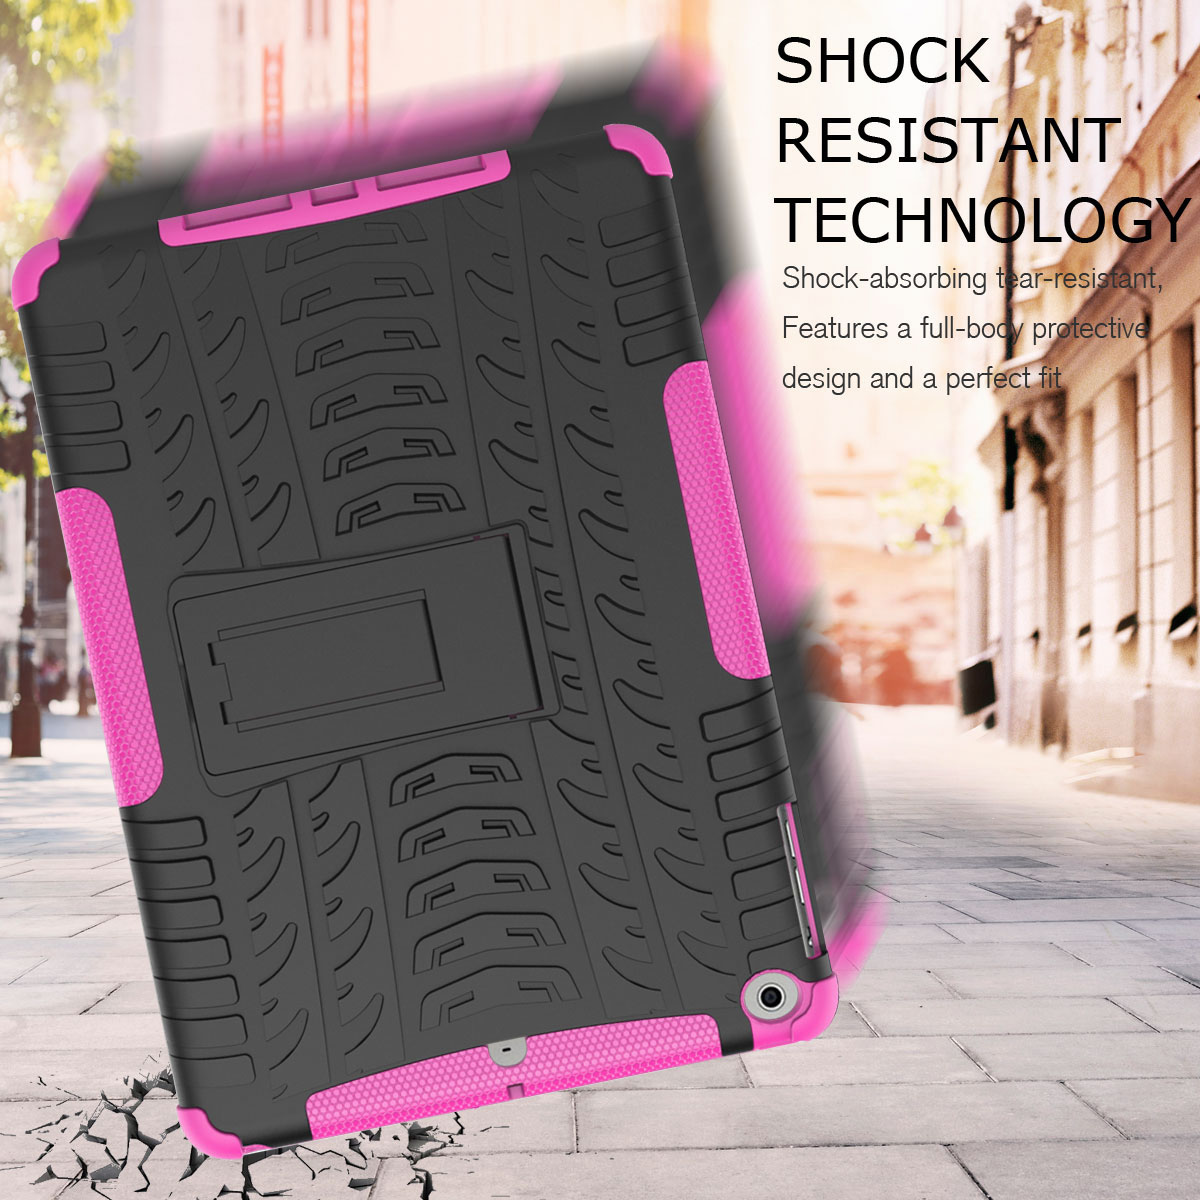 Hybrid-Rubber-Shockproof-Tough-Case-Cover-For-Apple-iPad-9-7-Air-Pro-Mini-1234 thumbnail 42